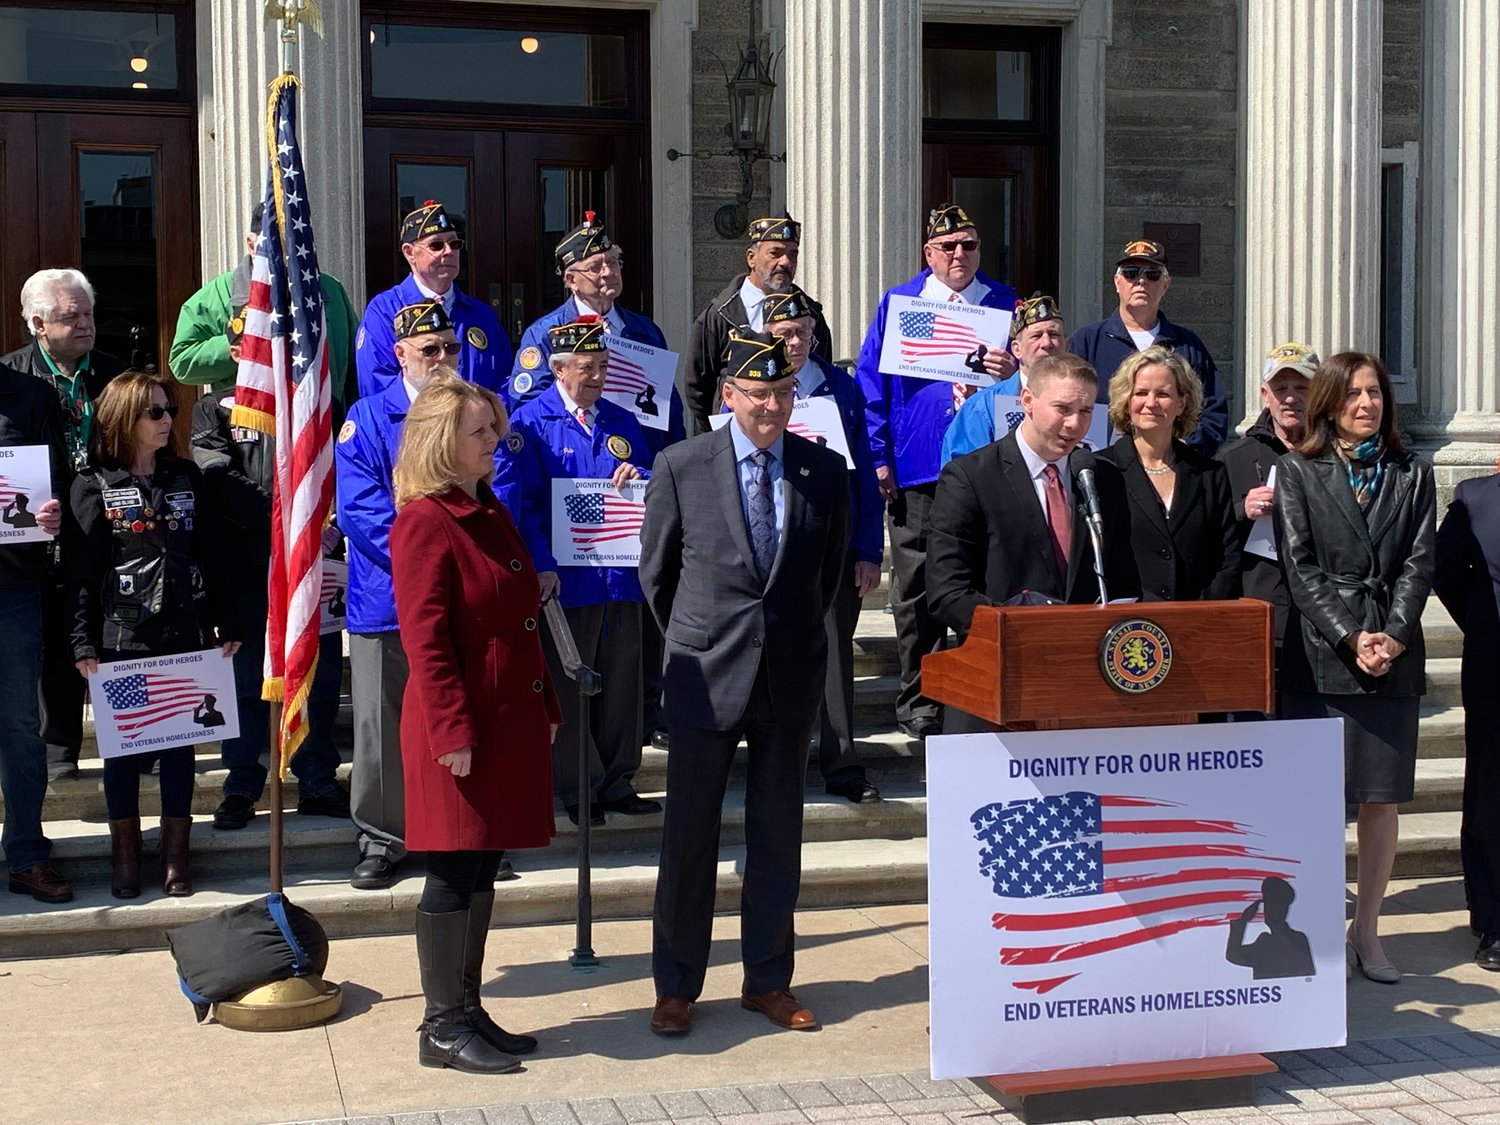 Legislator Josh Lafazan introduced two bills to end veteran homelessness in Nassau County in Mineola on April 3. To his left was County Executive Laura Curran.